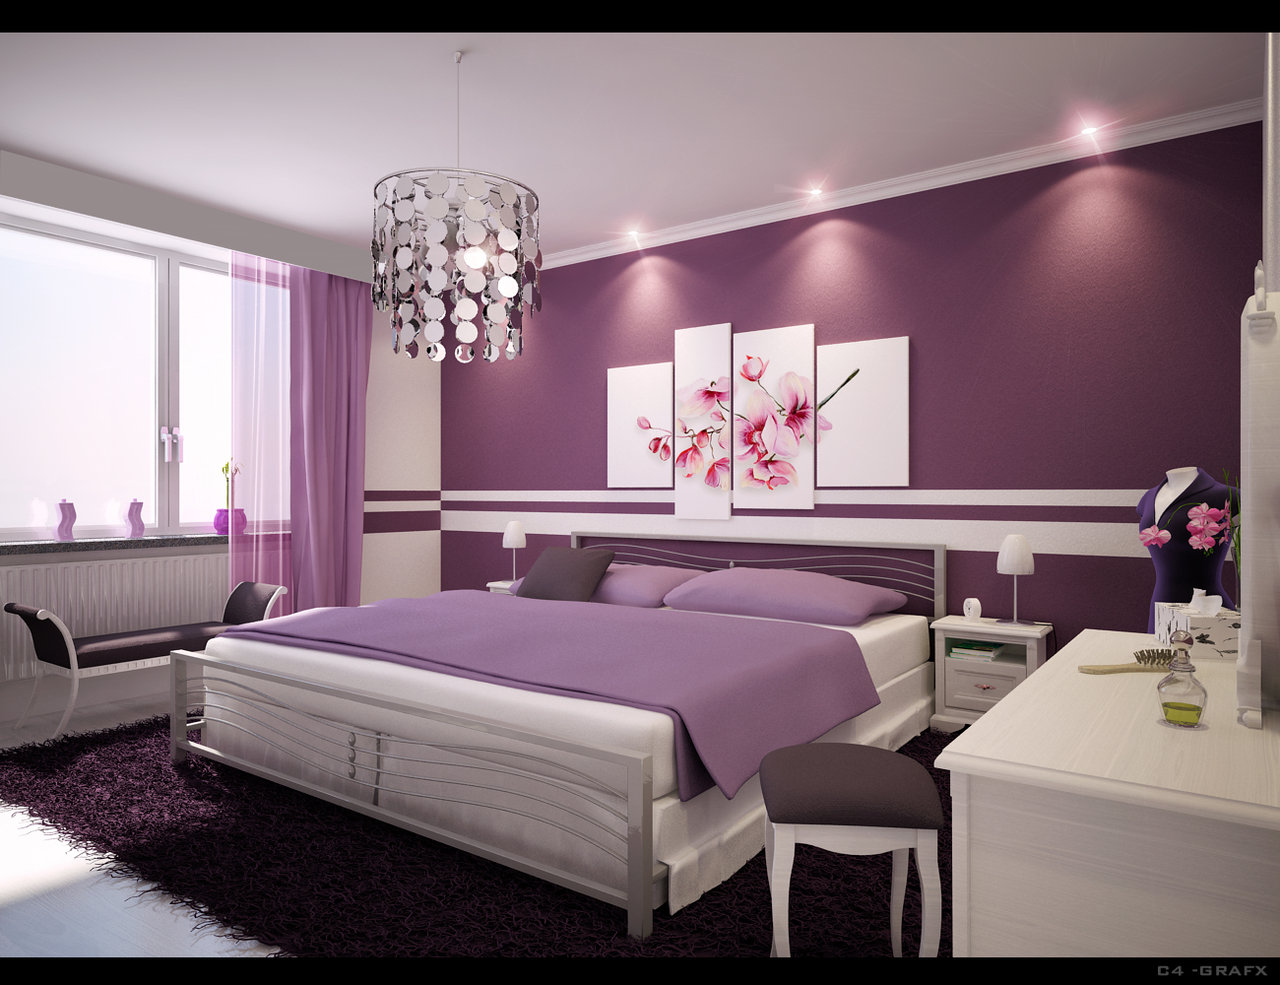 Excellent Adult Bedroom Design Ideas 1280 x 985 · 201 kB · jpeg